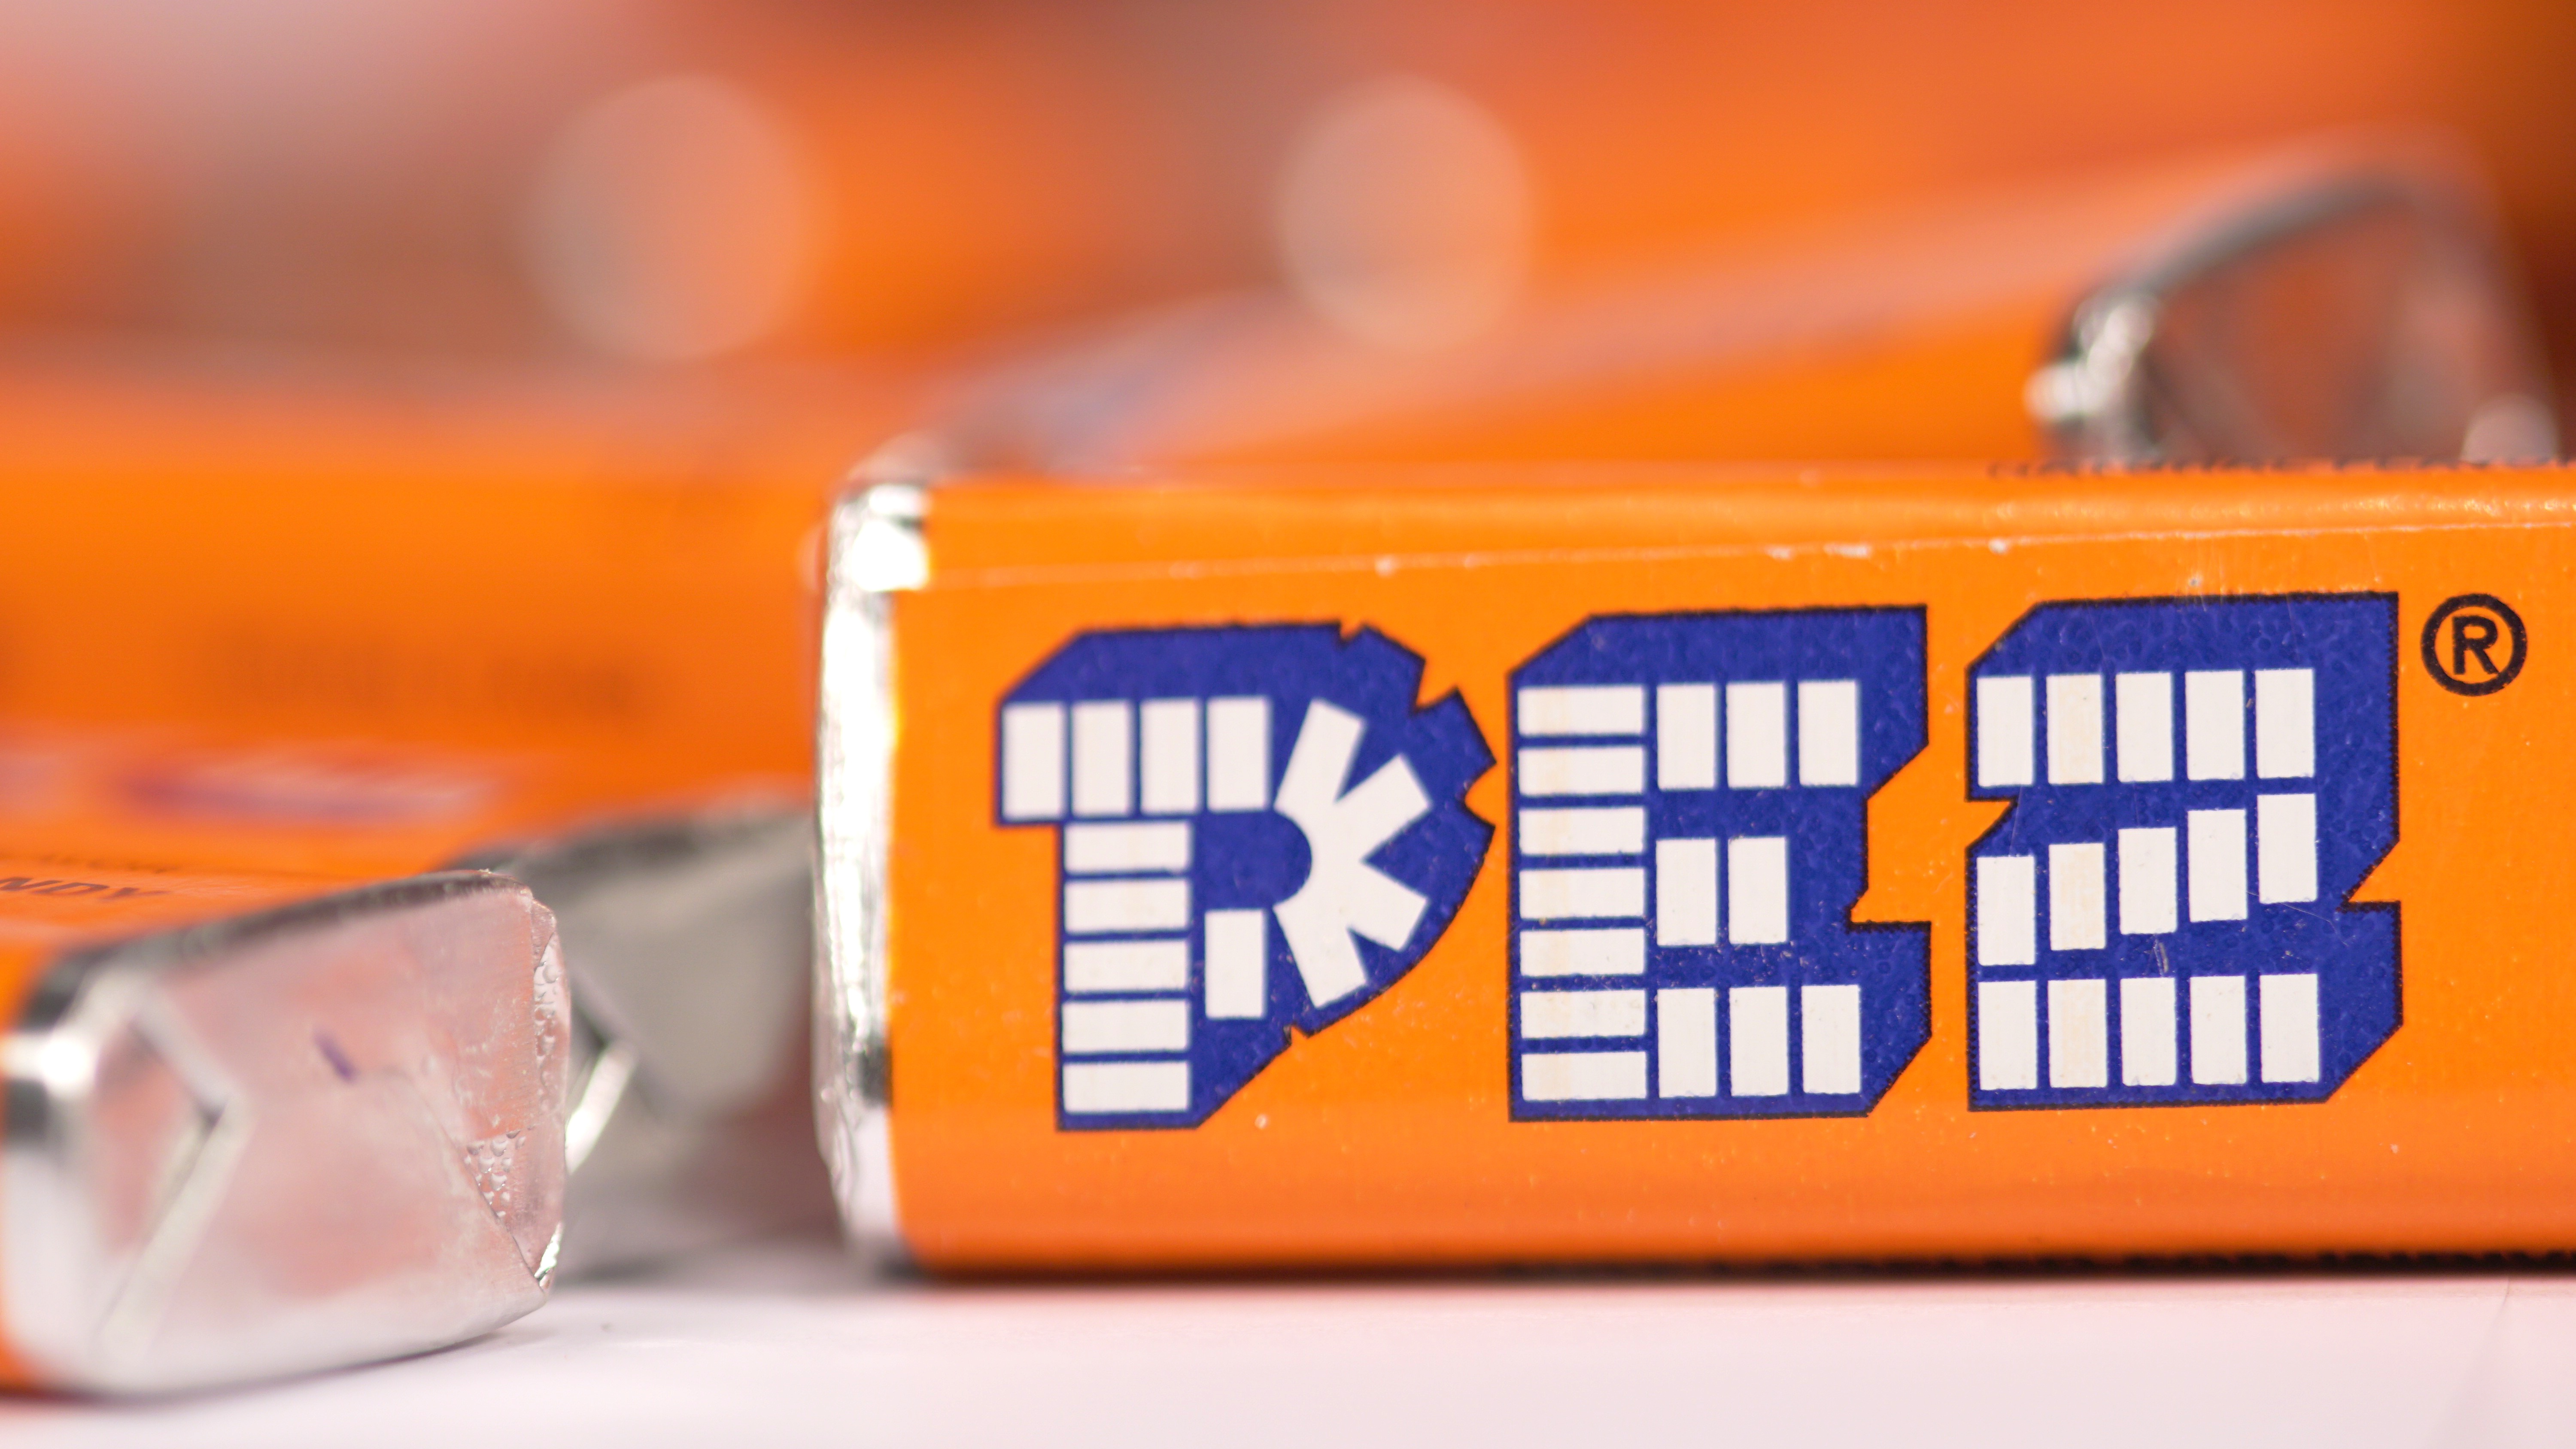 Iconic Candy Dispenser Creator PEZ Partners with EXPLO